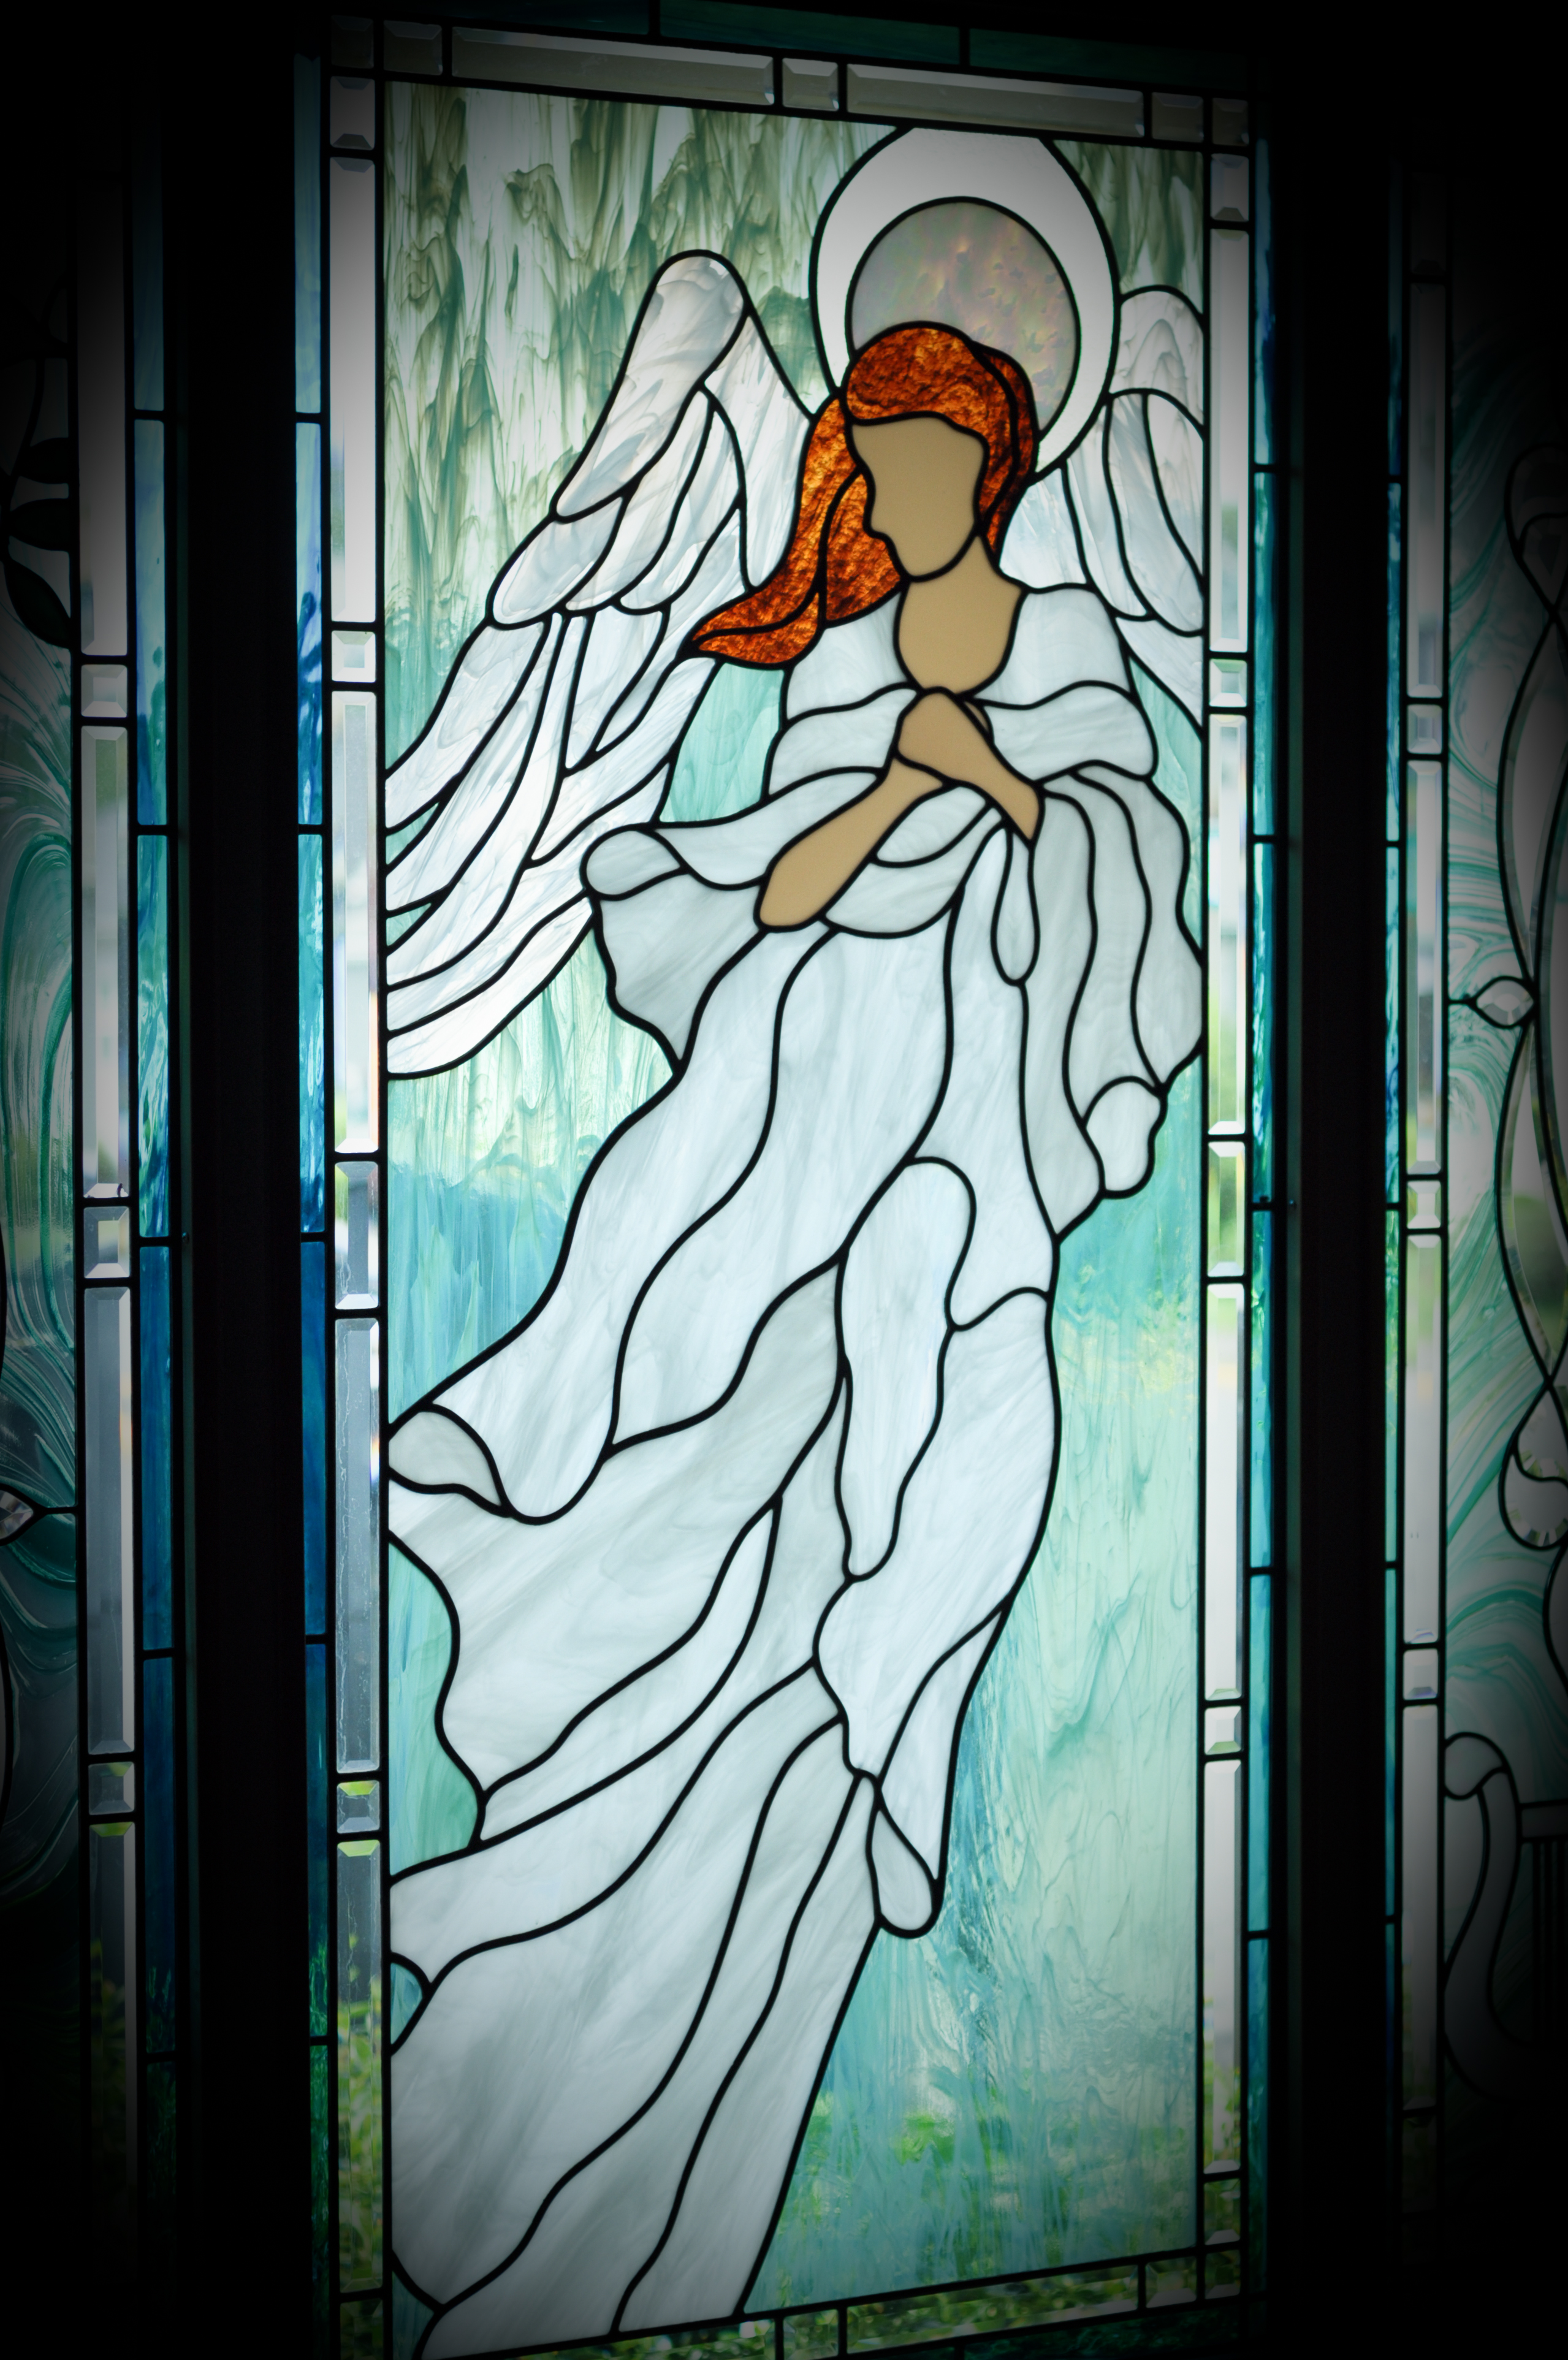 images/stories/HeaderImages/Frame1/Angel_Window.jpg